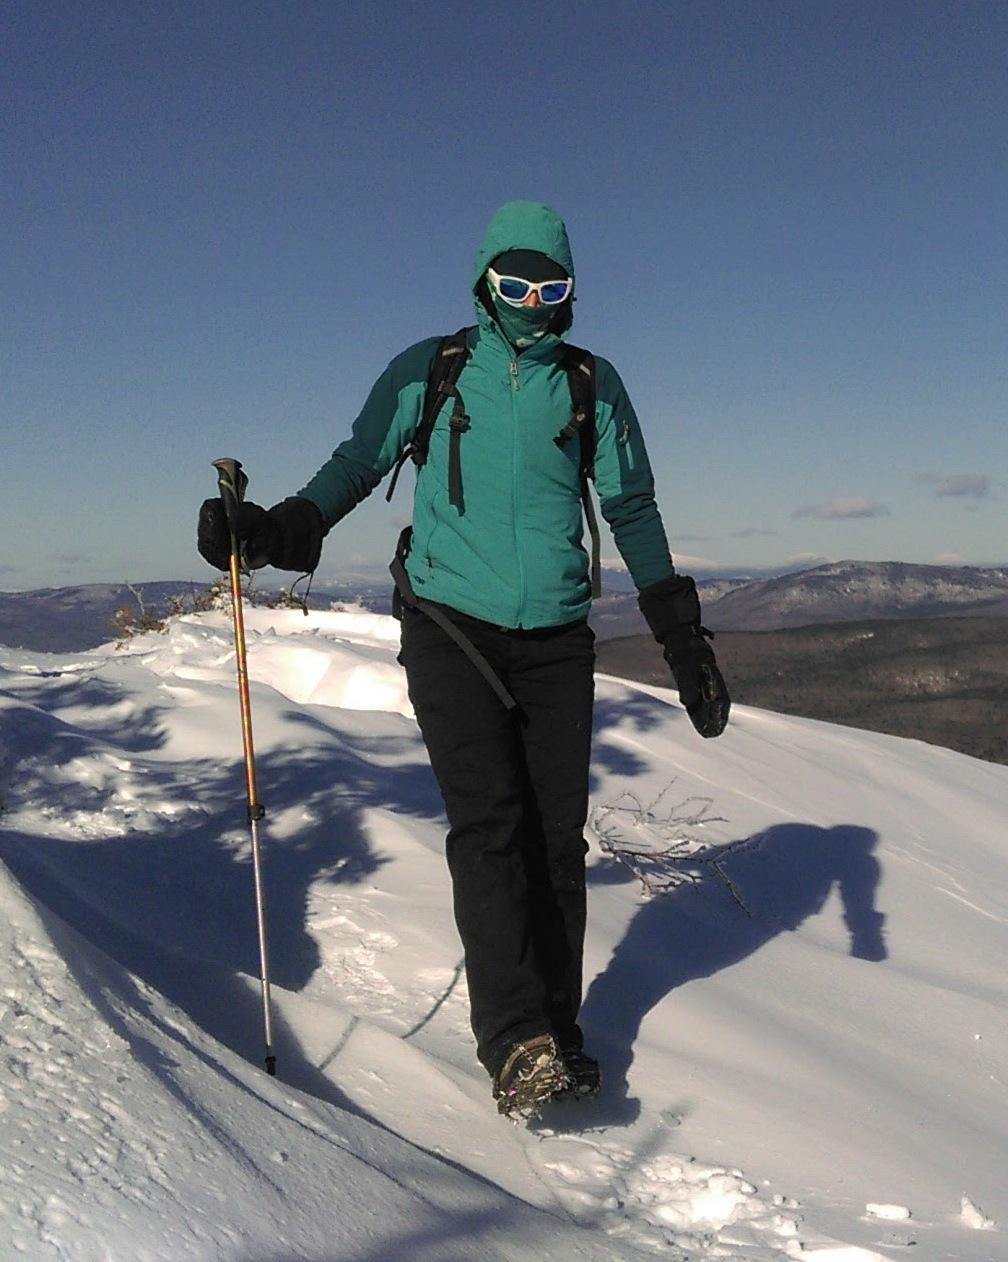 Extra layers (and mini-crampons) are especially important when your destination is exposed to the wind, like a summit, ridge or viewpoint.